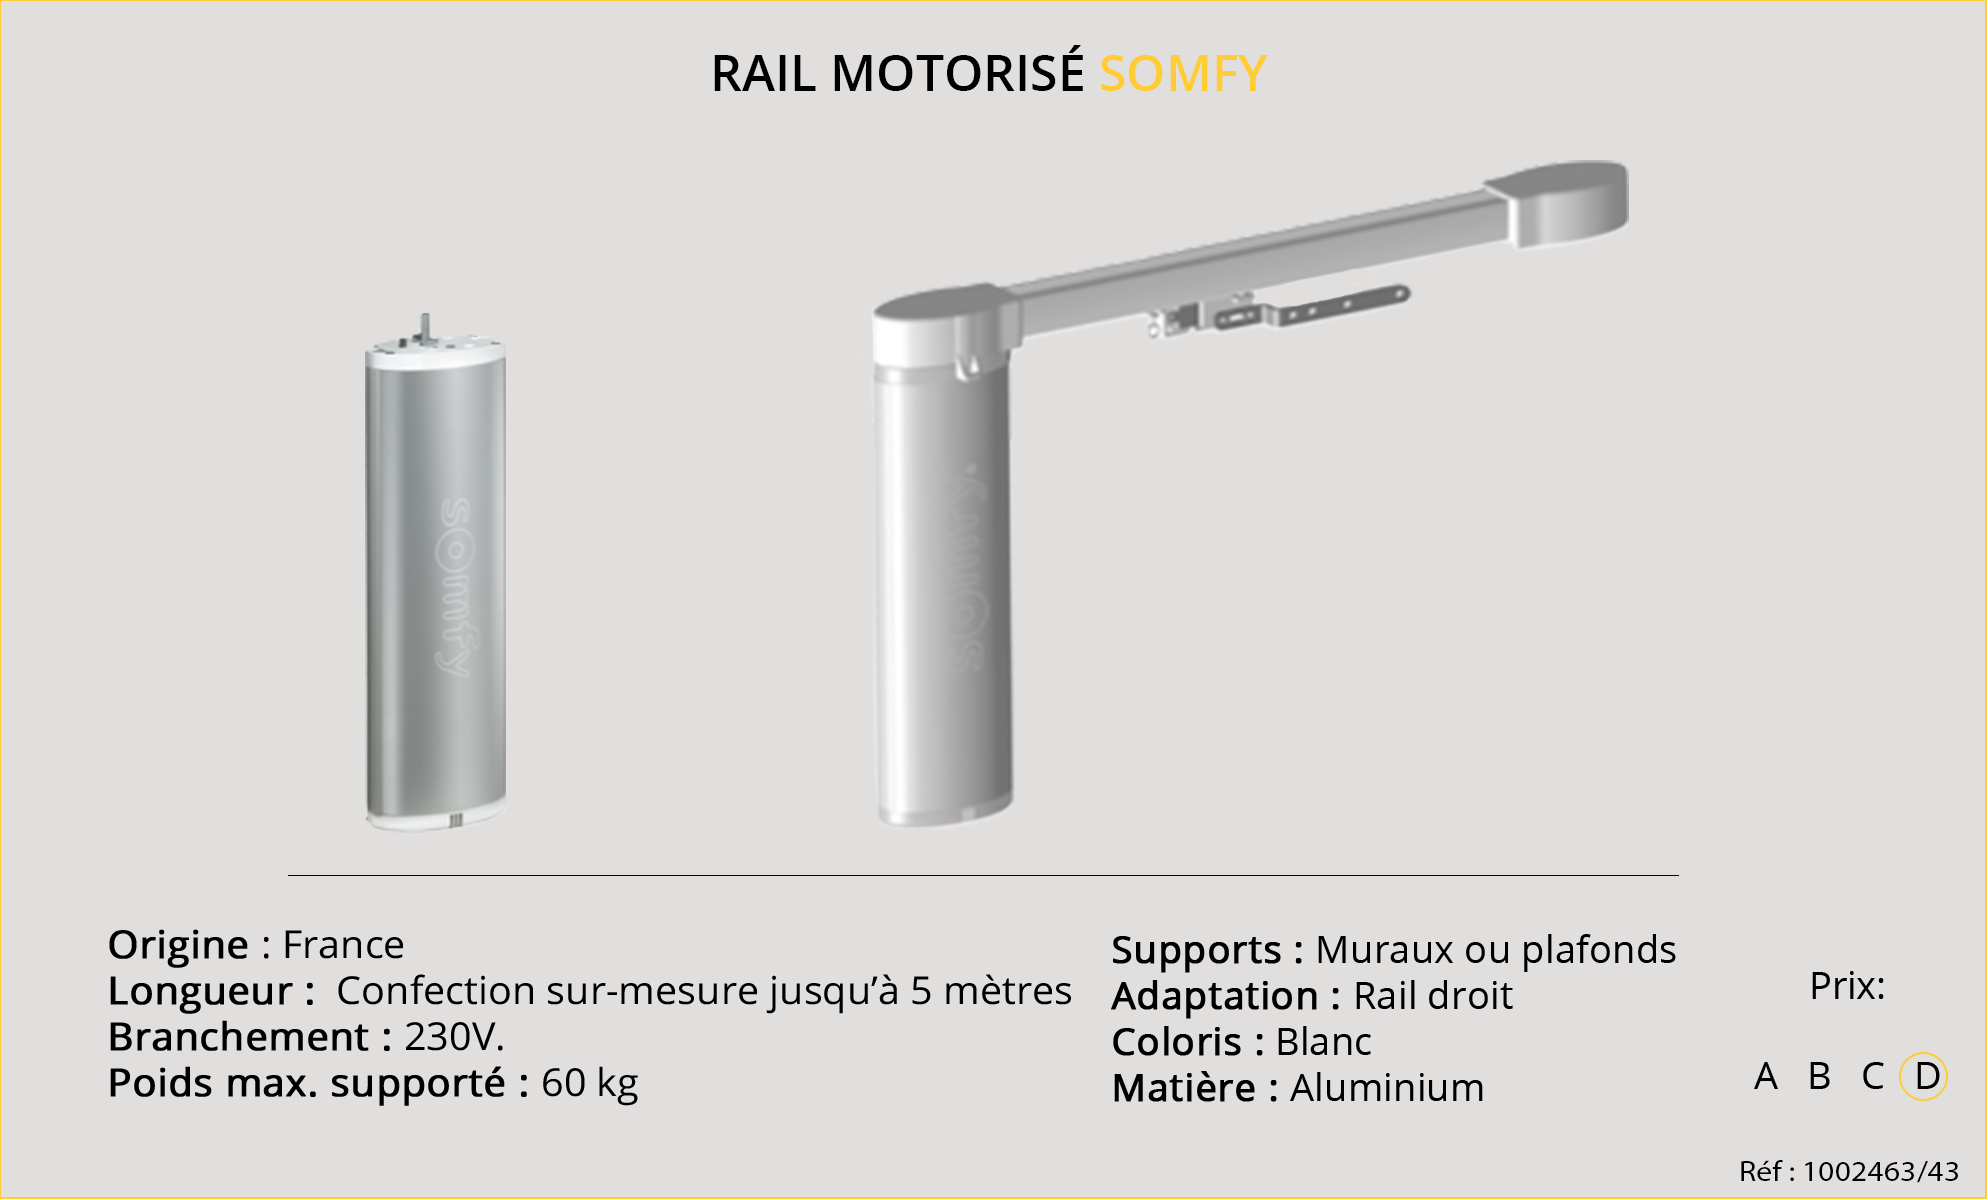 Rail motorisé somfy